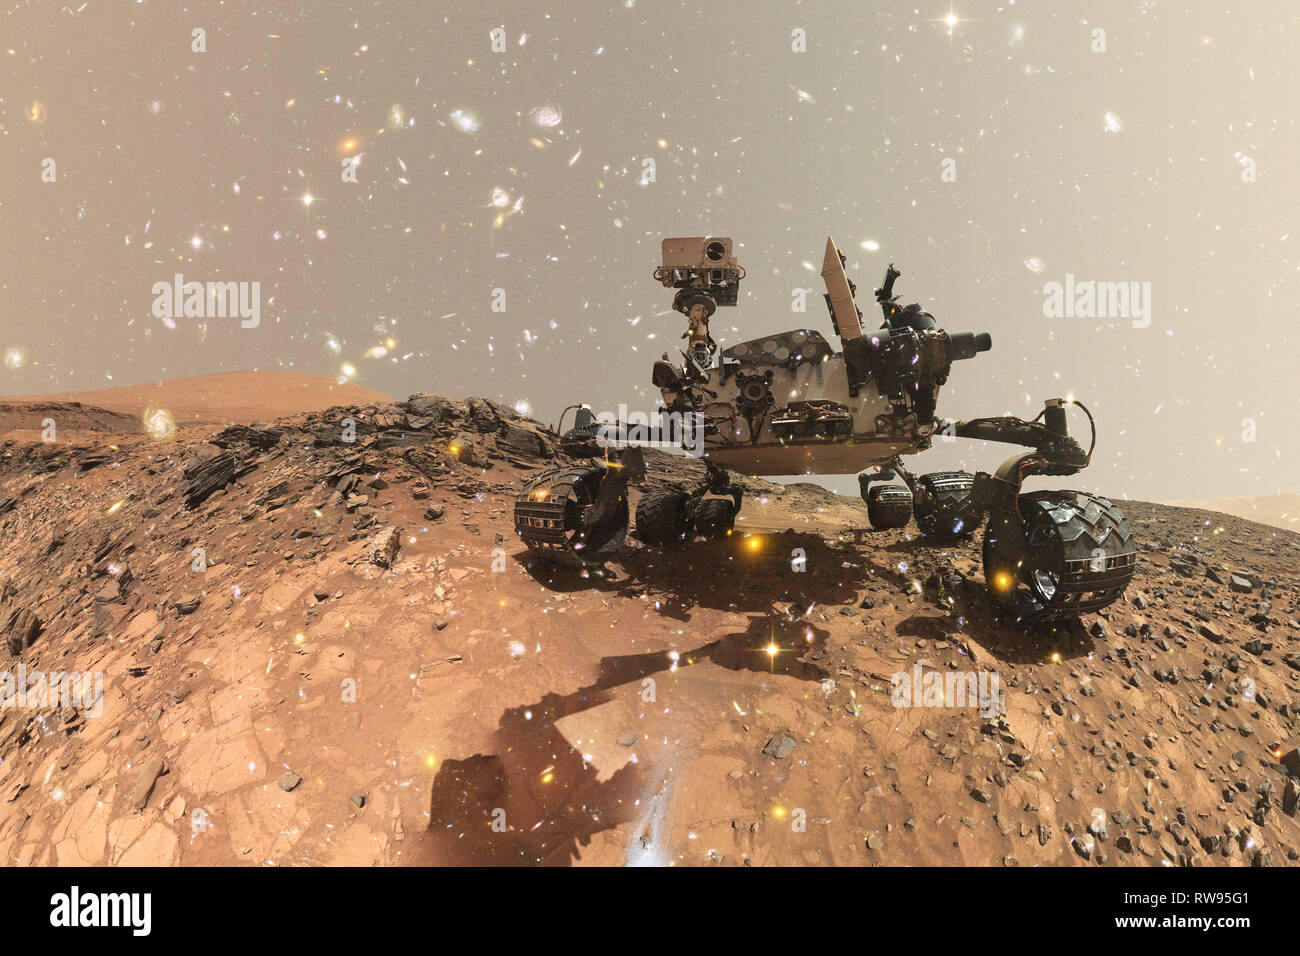 Curiosity Mars Rover exploring the surface planet of Mars. Elements of this image furnished by NASA. - Stock Image